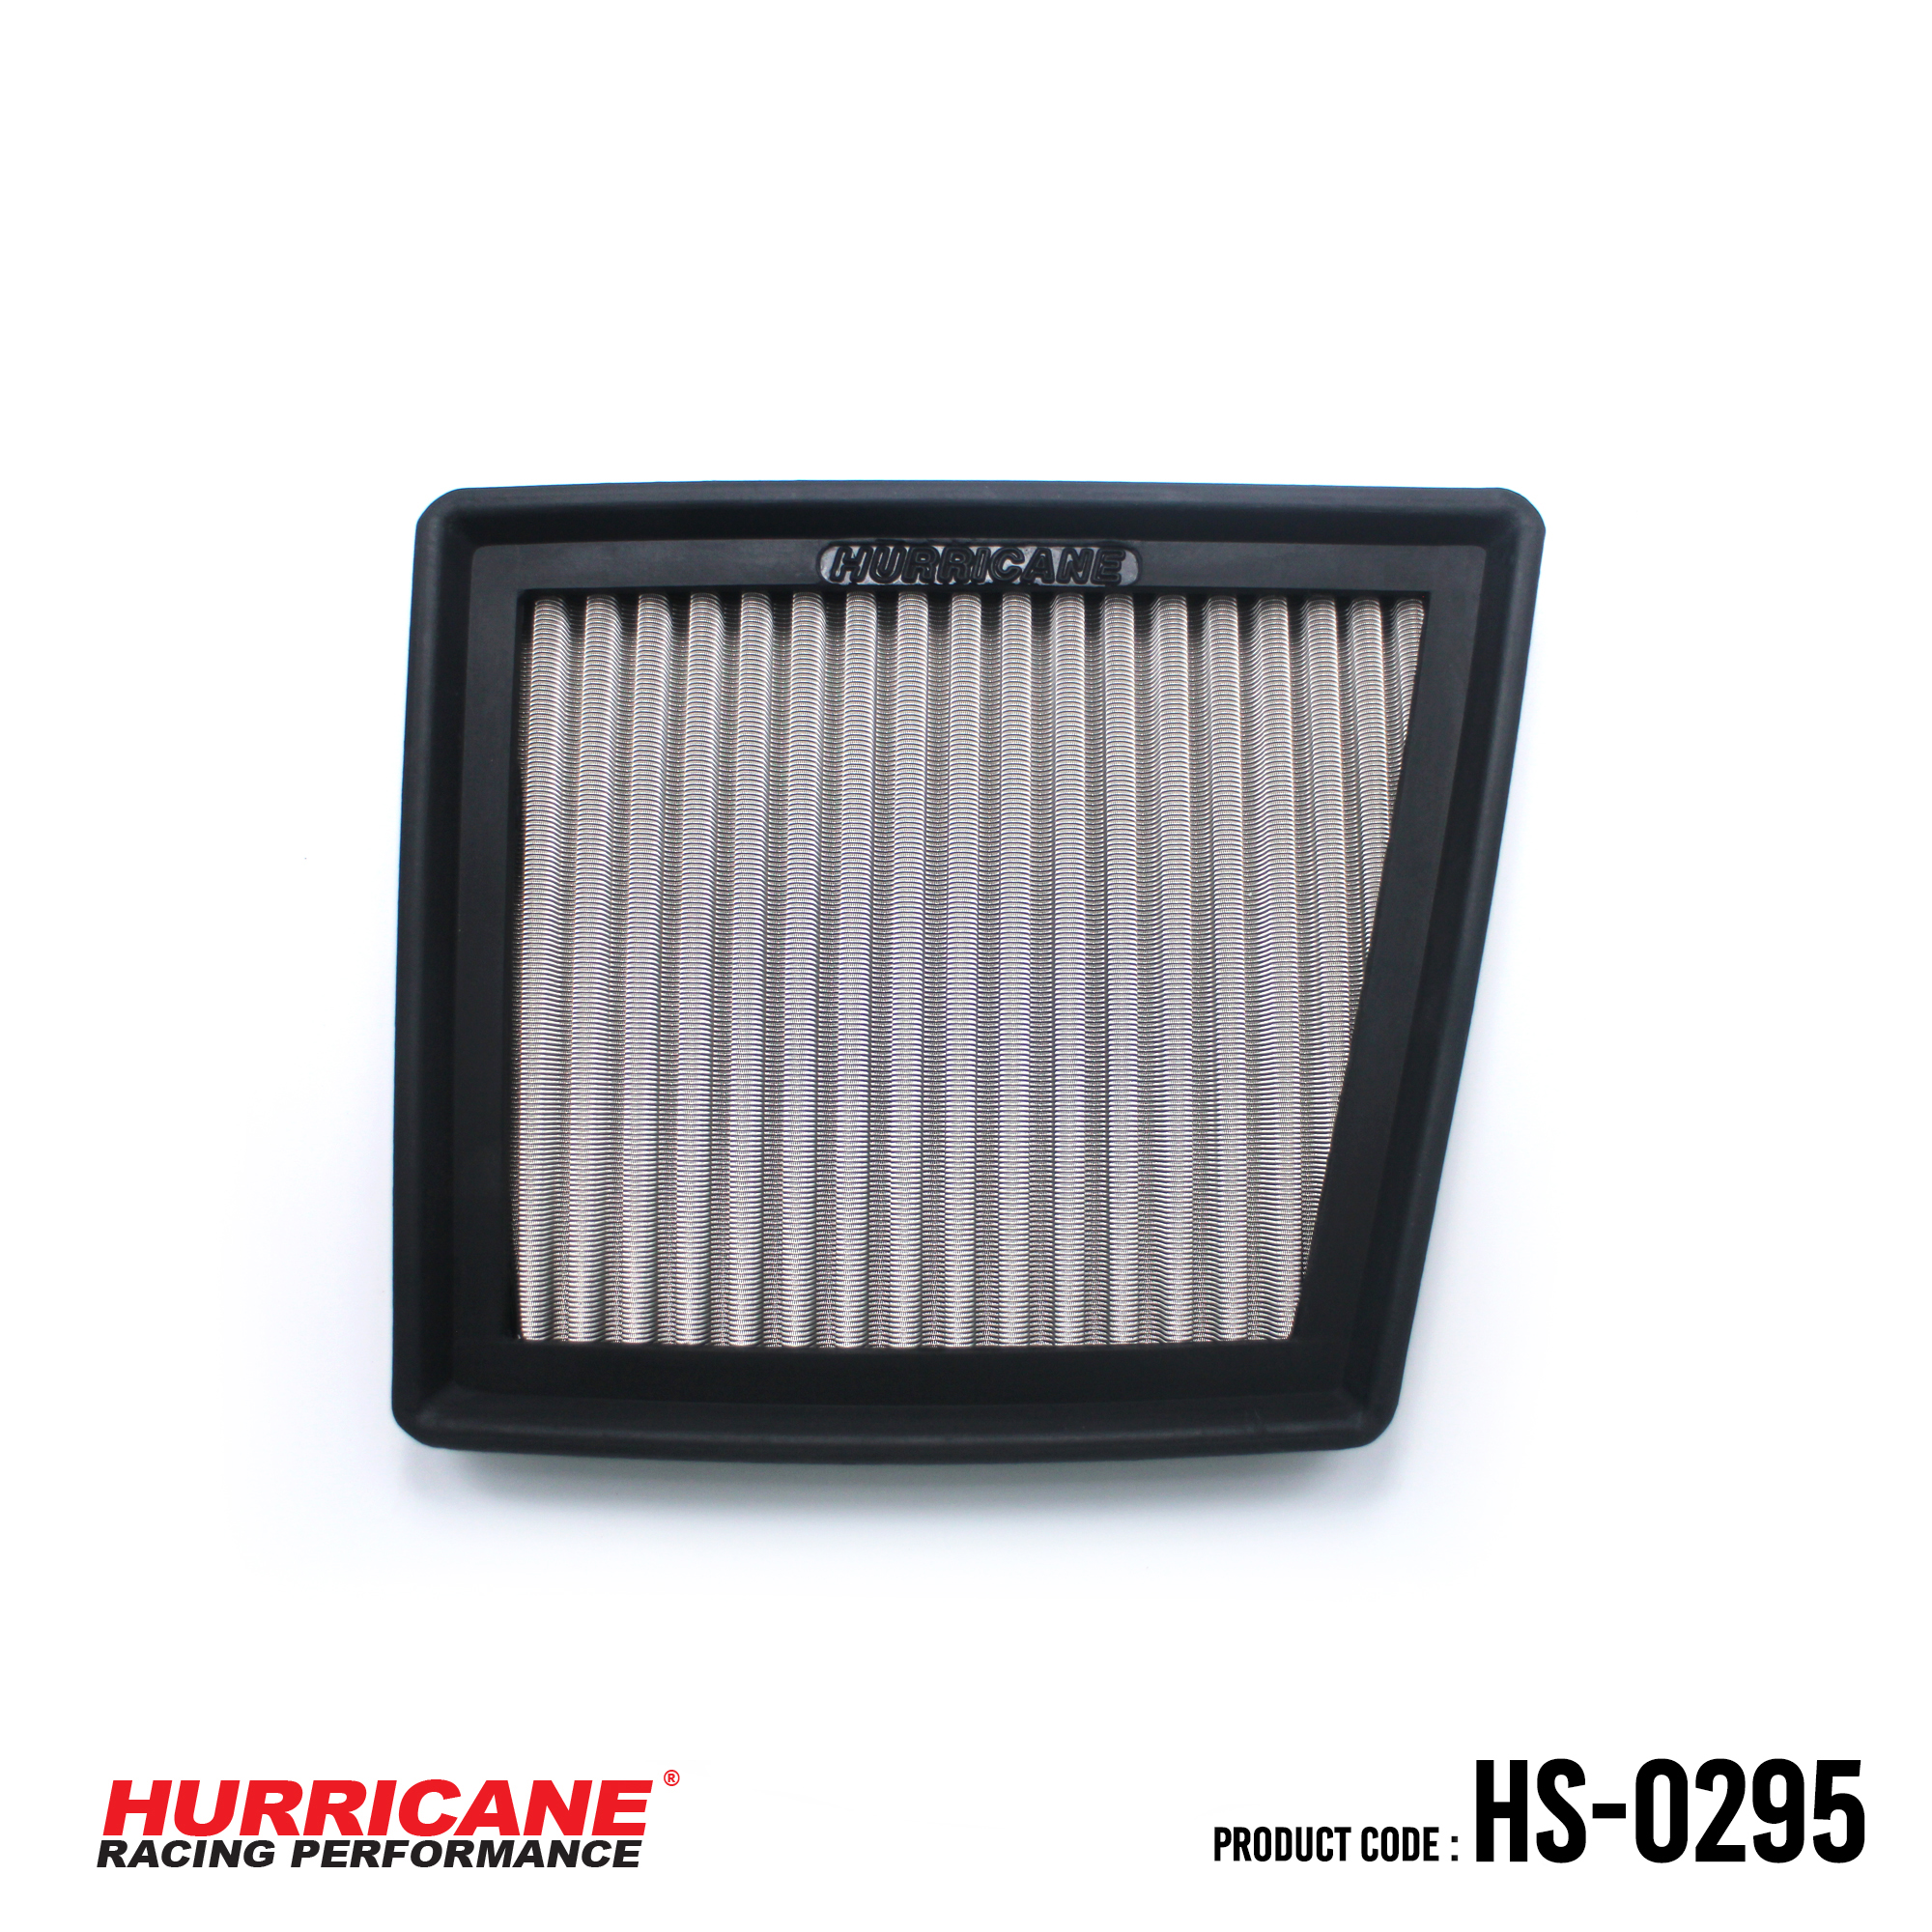 HURRICANE STAINLESS STEEL AIR FILTER FOR HS-0295 Ford